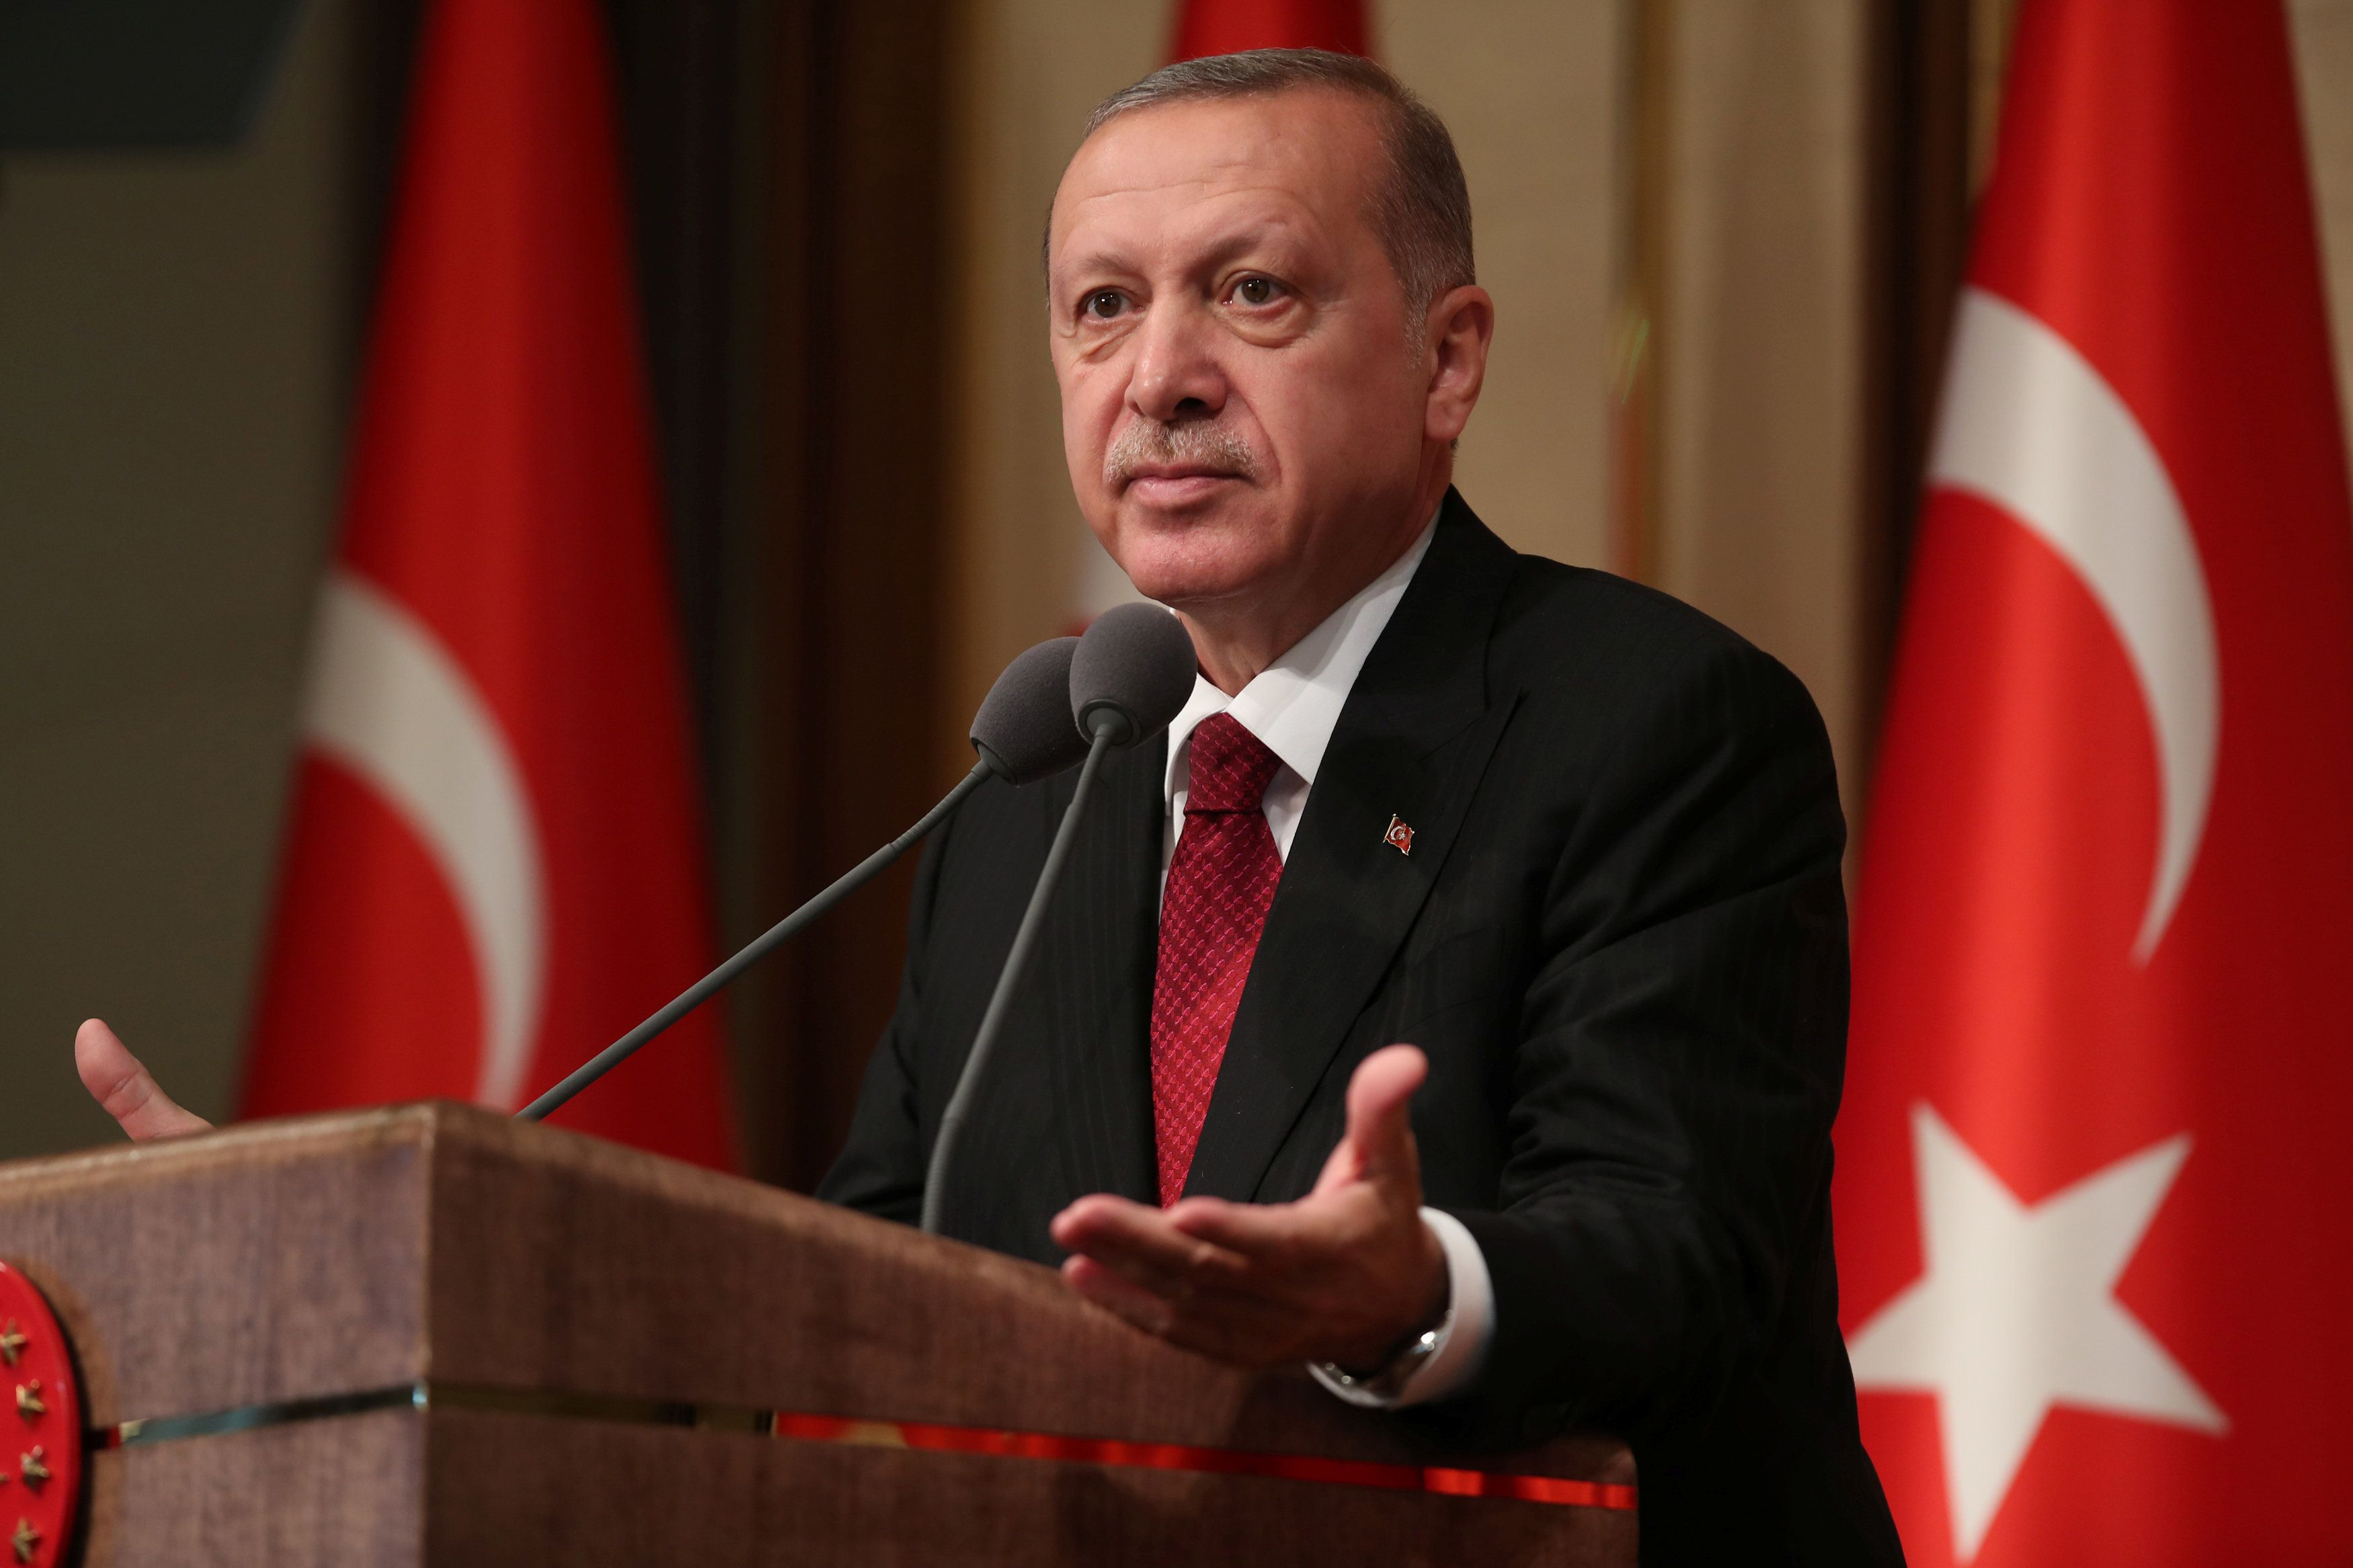 Turkish President announces plan to boycott United States  electronics, including iPhones